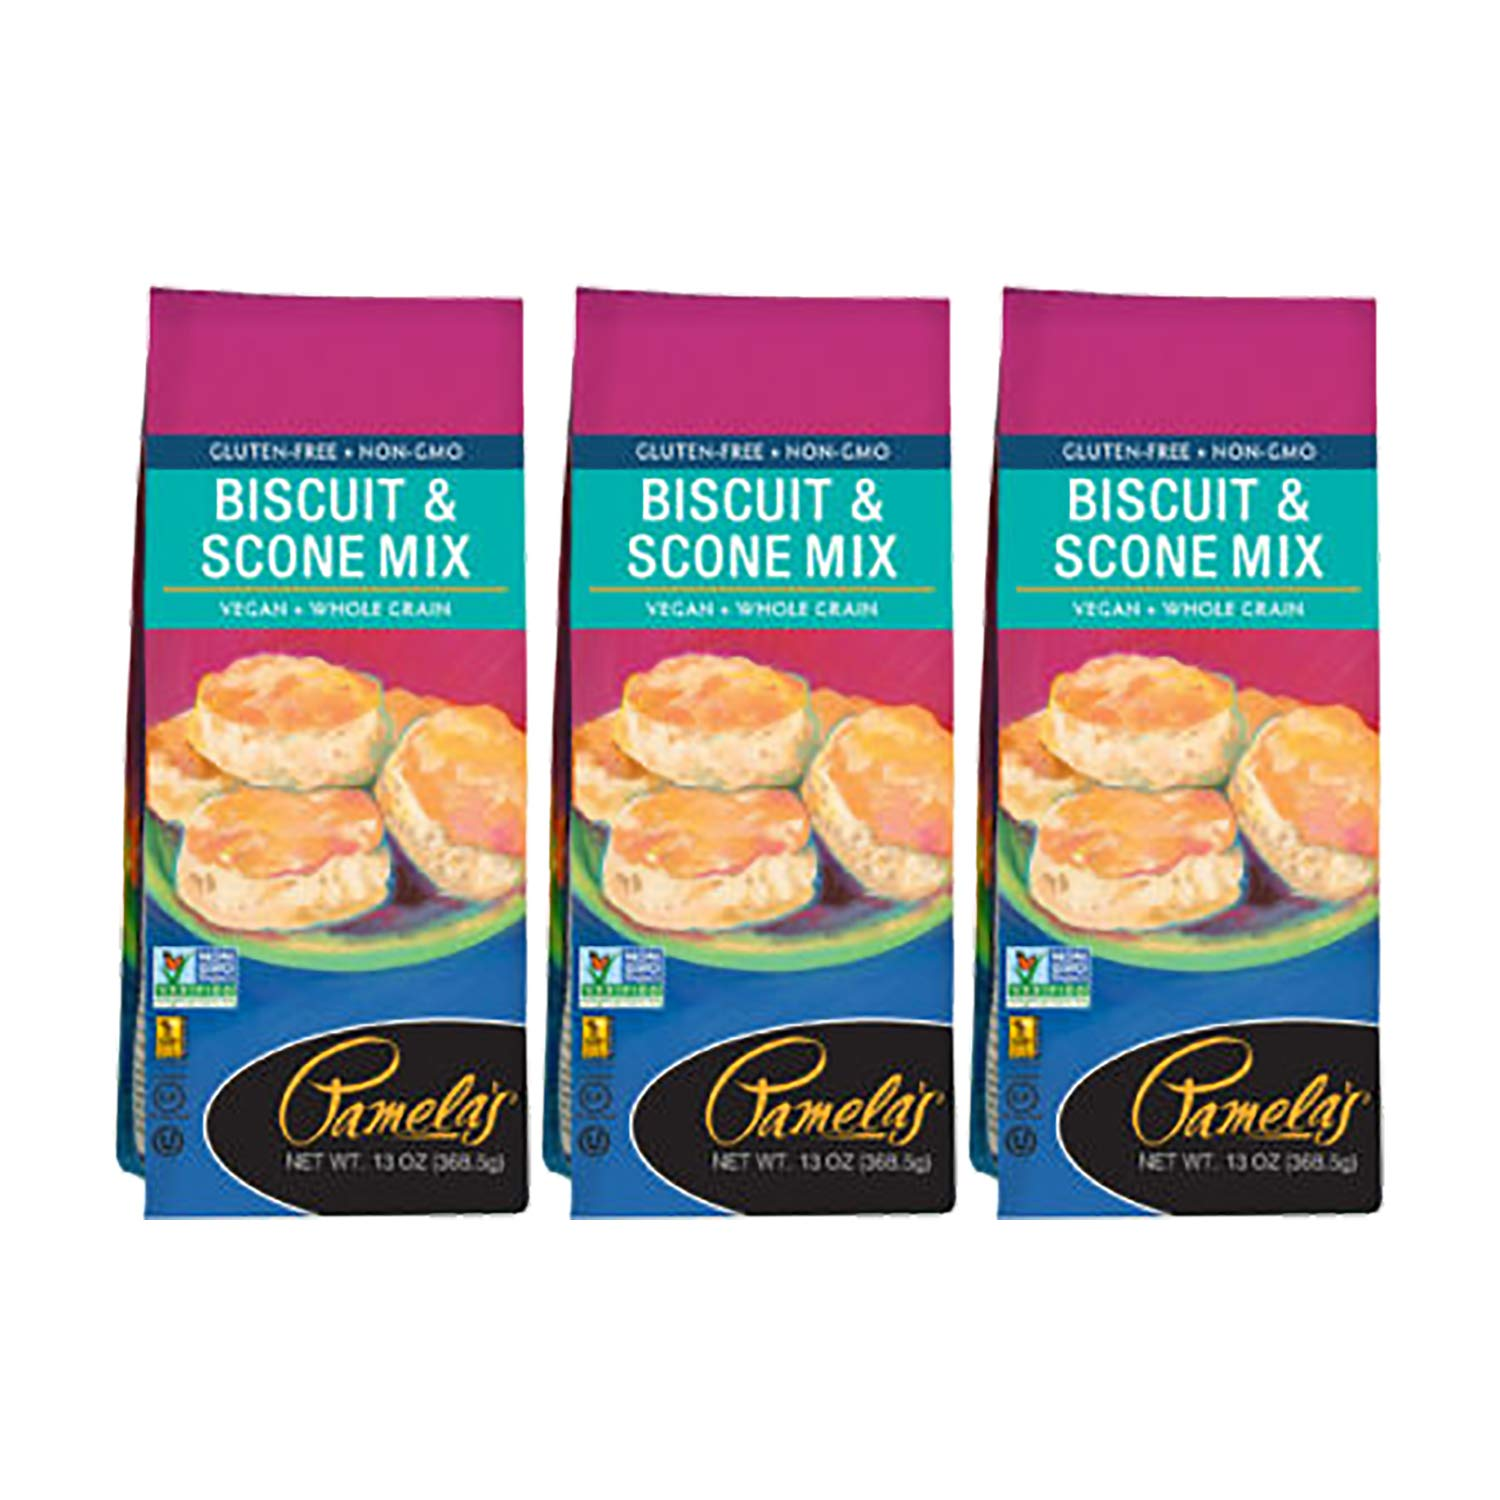 Pamela's Products Gluten Free Biscuit & Scone Mix, 13 ounce,(Pack - 3) by Pamela's Products